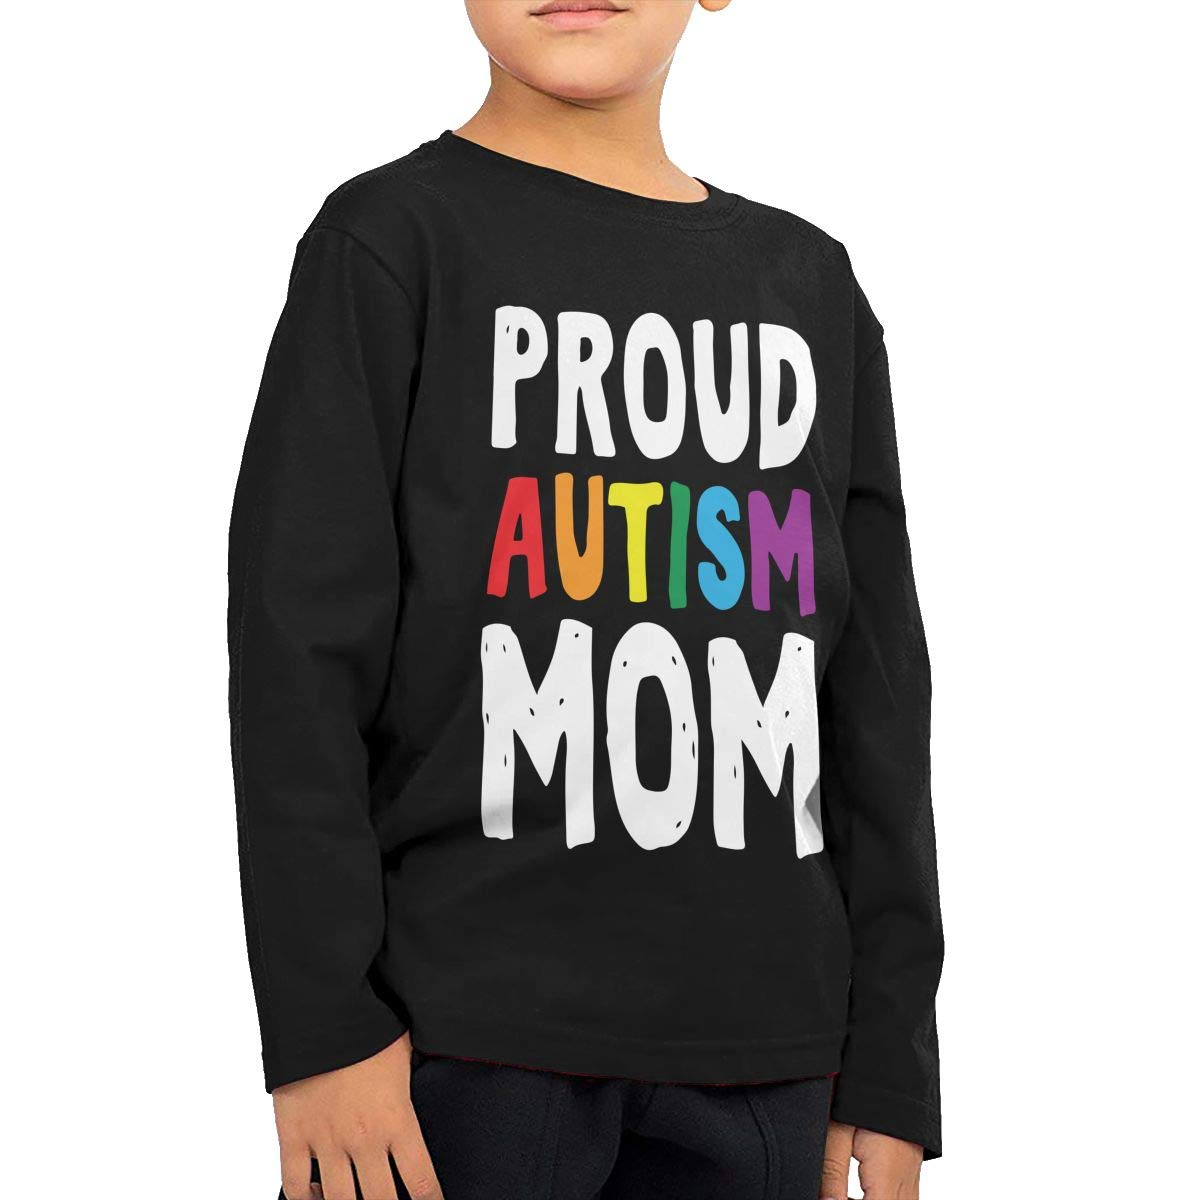 CERTONGCXTS Little Boys Proud Autism Mom ComfortSoft Long Sleeve Shirt